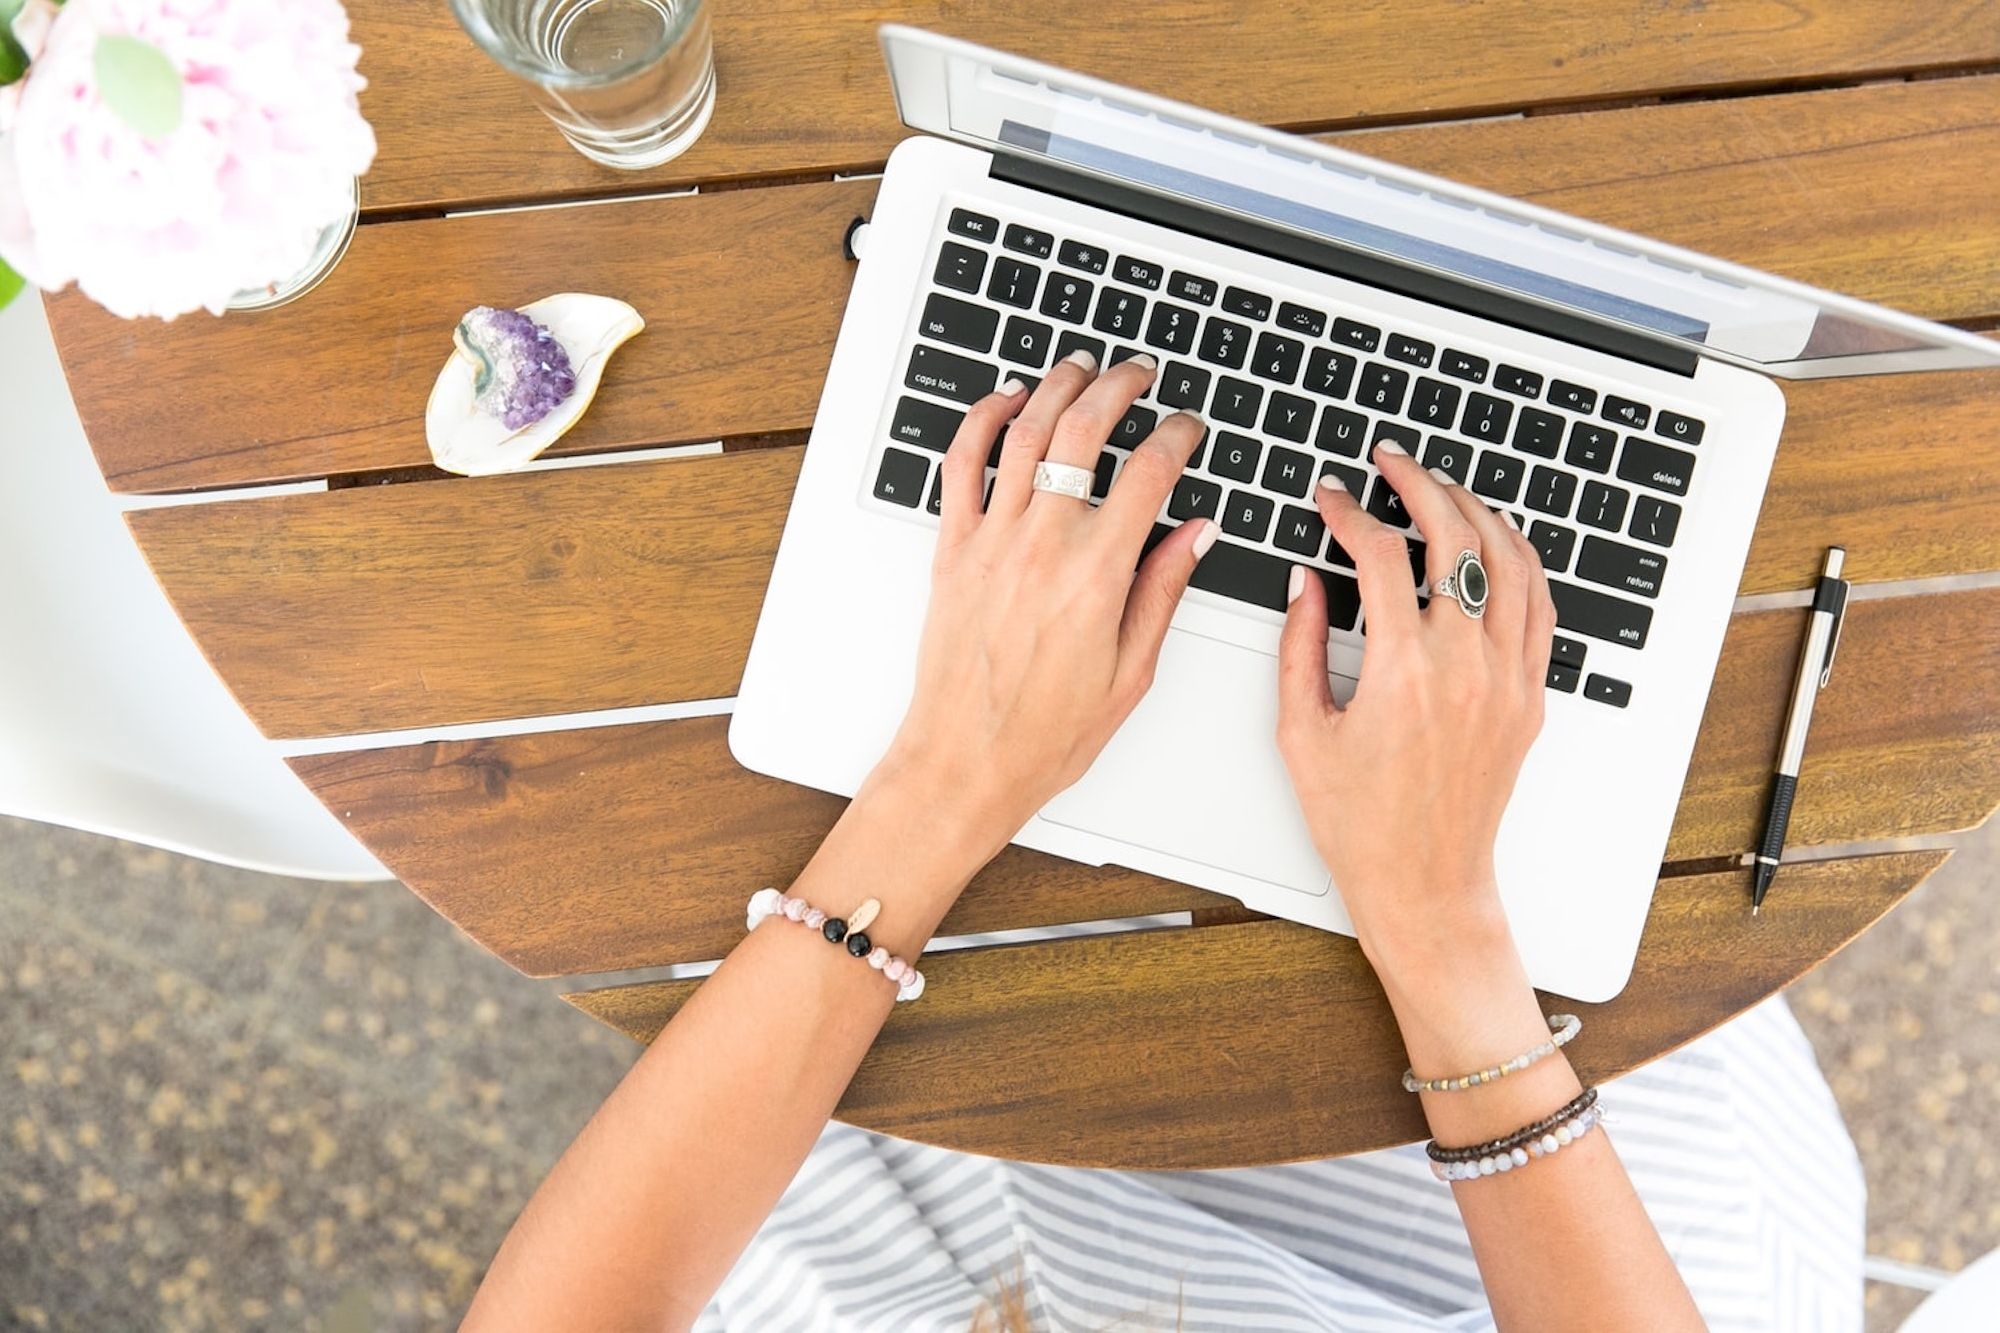 Do You Need a Virtual Assistant? This Service May the Solution You're Looking For